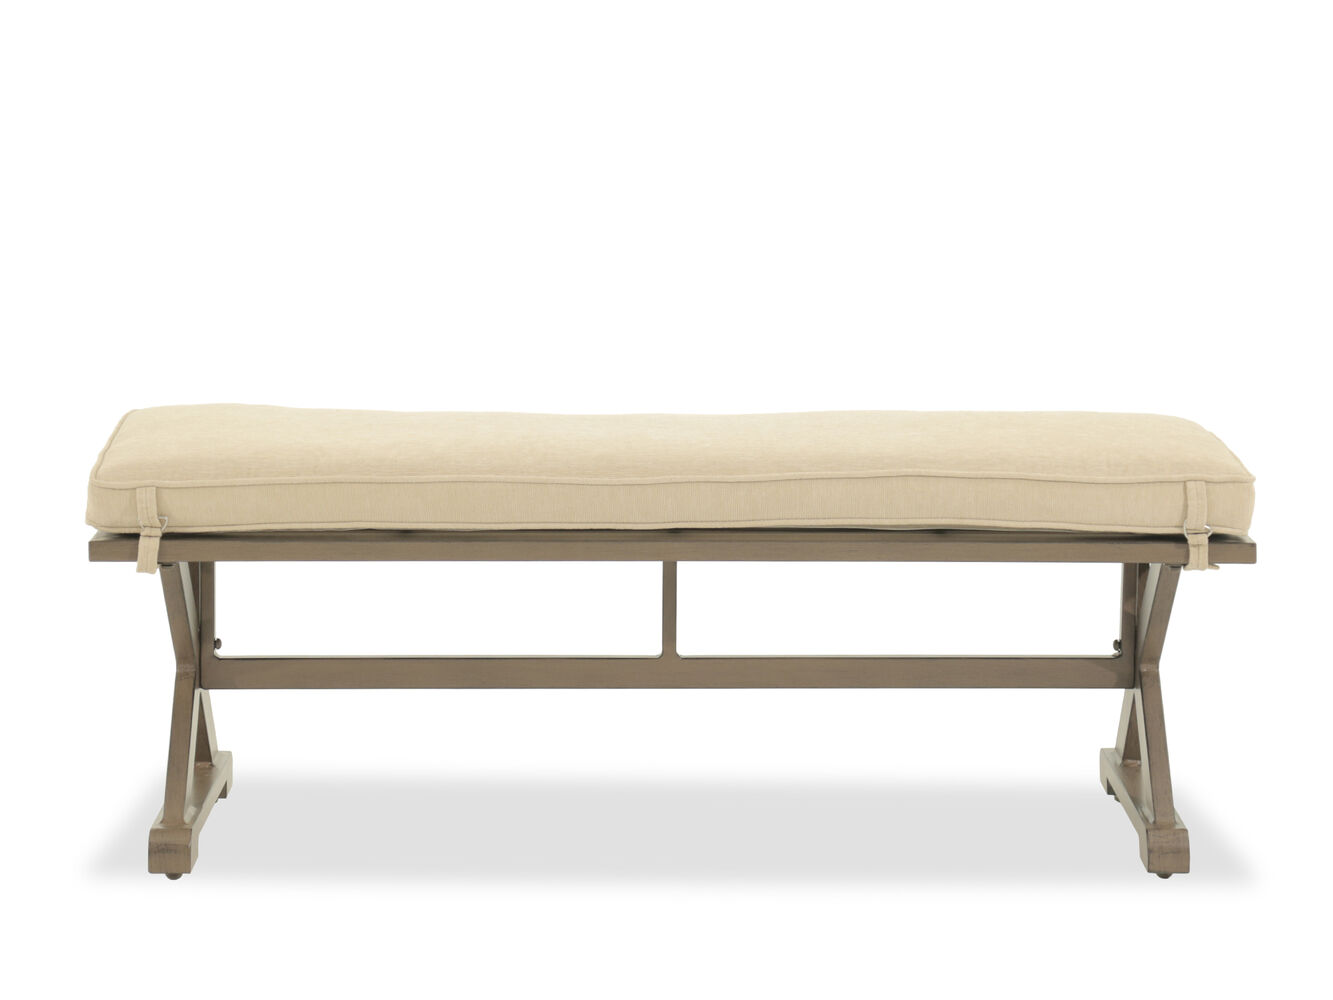 X Leg Aluminum Bench With Cushion In Beige Mathis